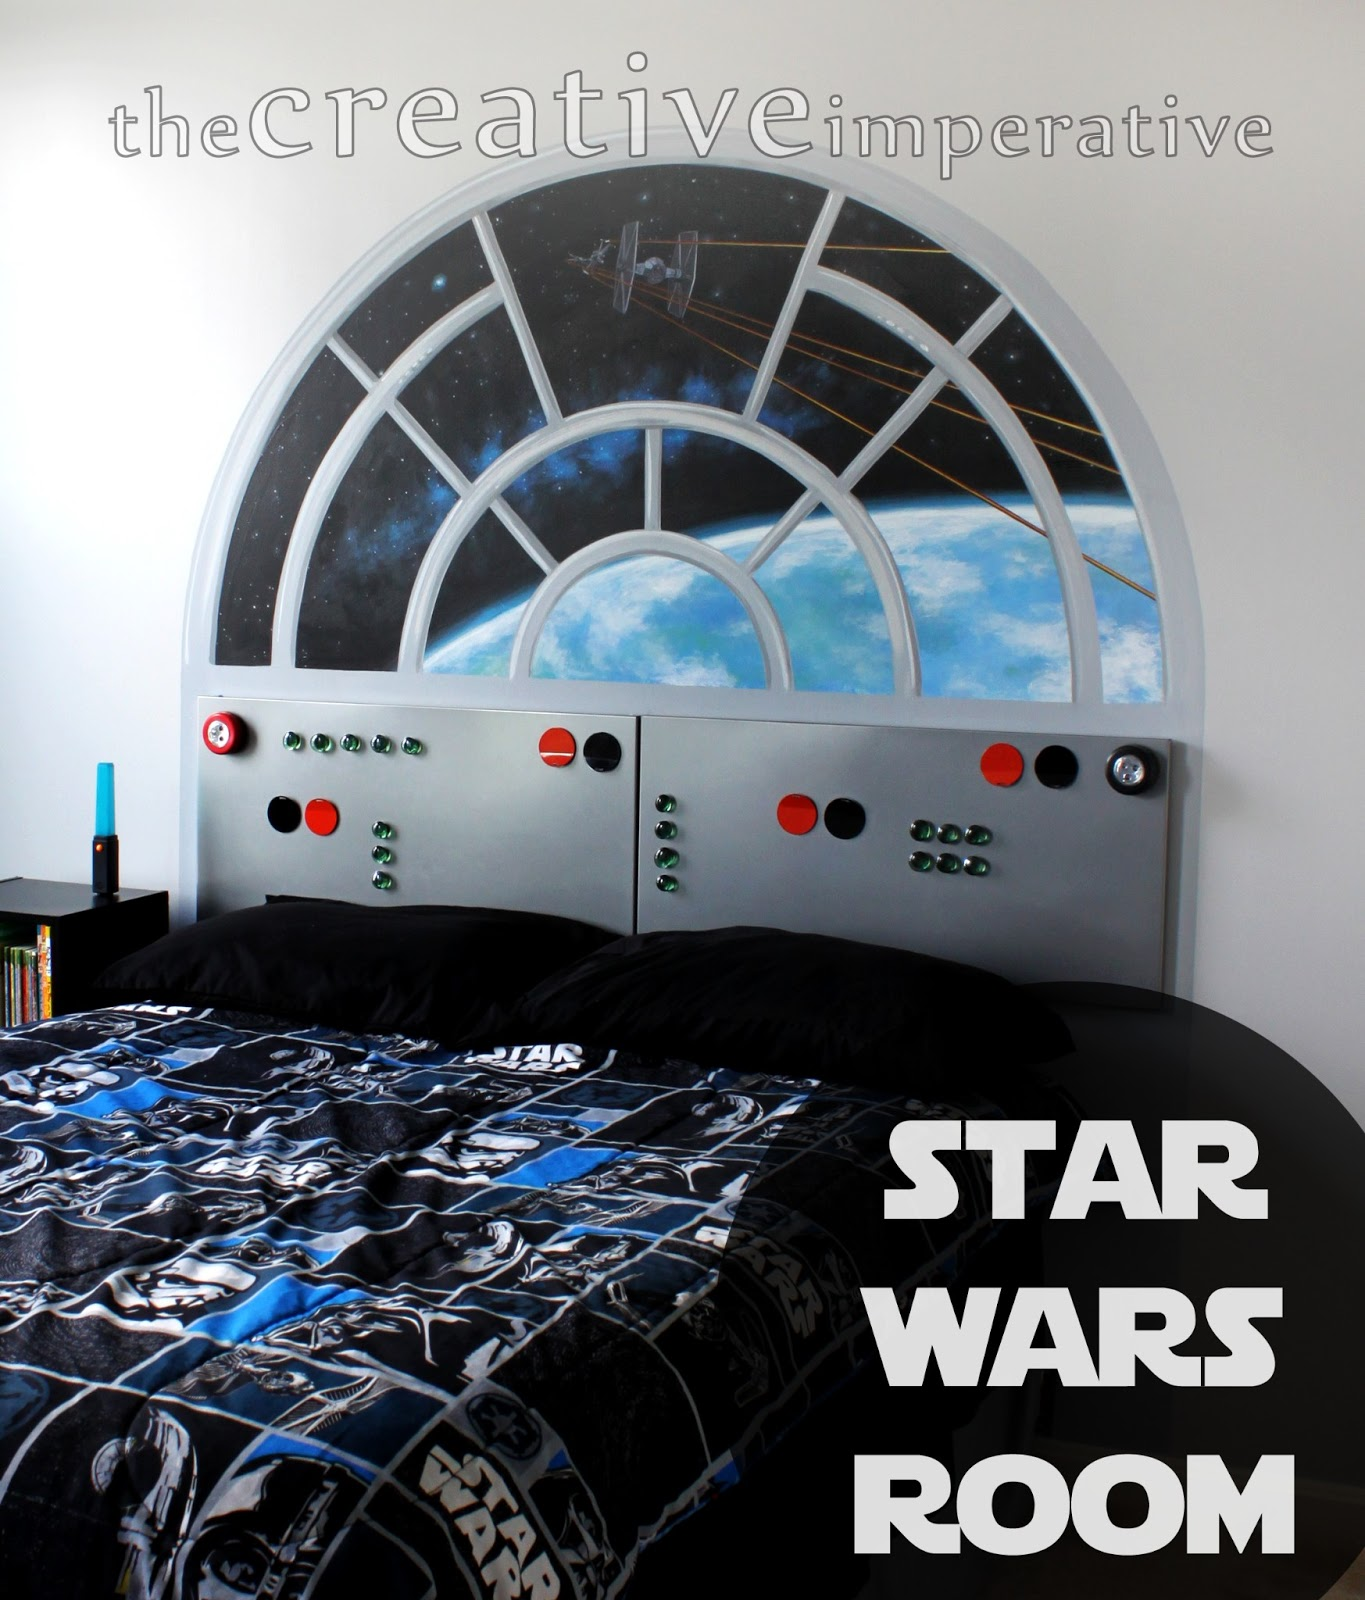 Star Wars Bedroom Ideas : ... Star Wars Bedroom Ideas with Star Wars Bedroom Decorating Ideas also